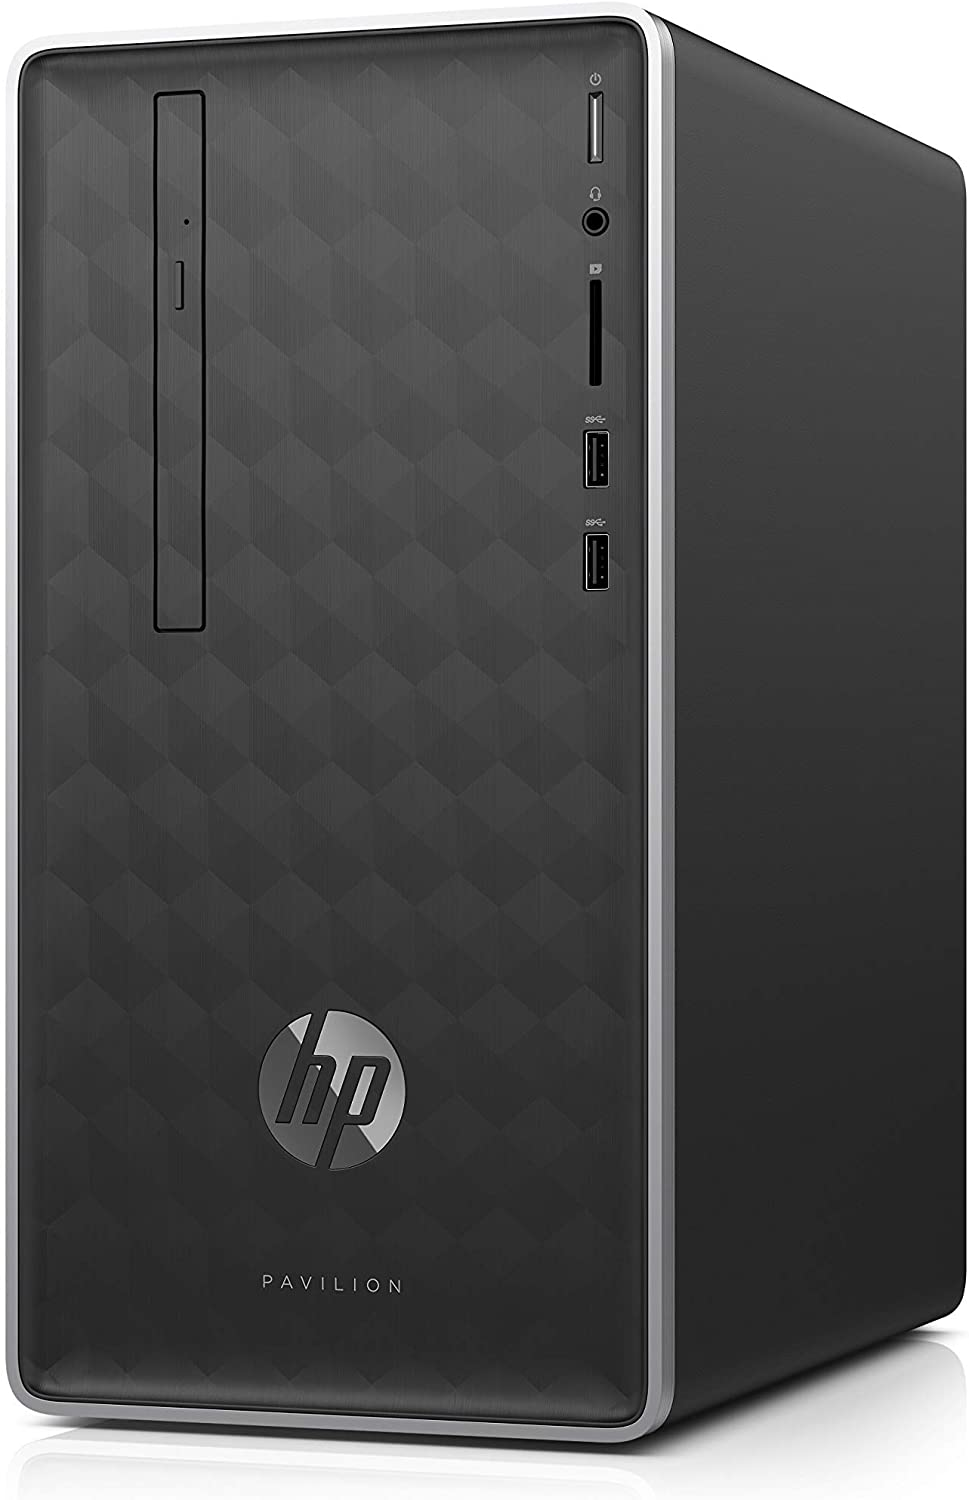 HP Pavilion Business Desktop PC 590-p0033w Intel Core i3-8100 (up to 3.60 GHz), 4GB DDR4-2400 SDRAM, 1TB 7200 RPM HDD, 16GB Optane Memory, DVD-ROM, USB Type-C, Keyboard and Mouse